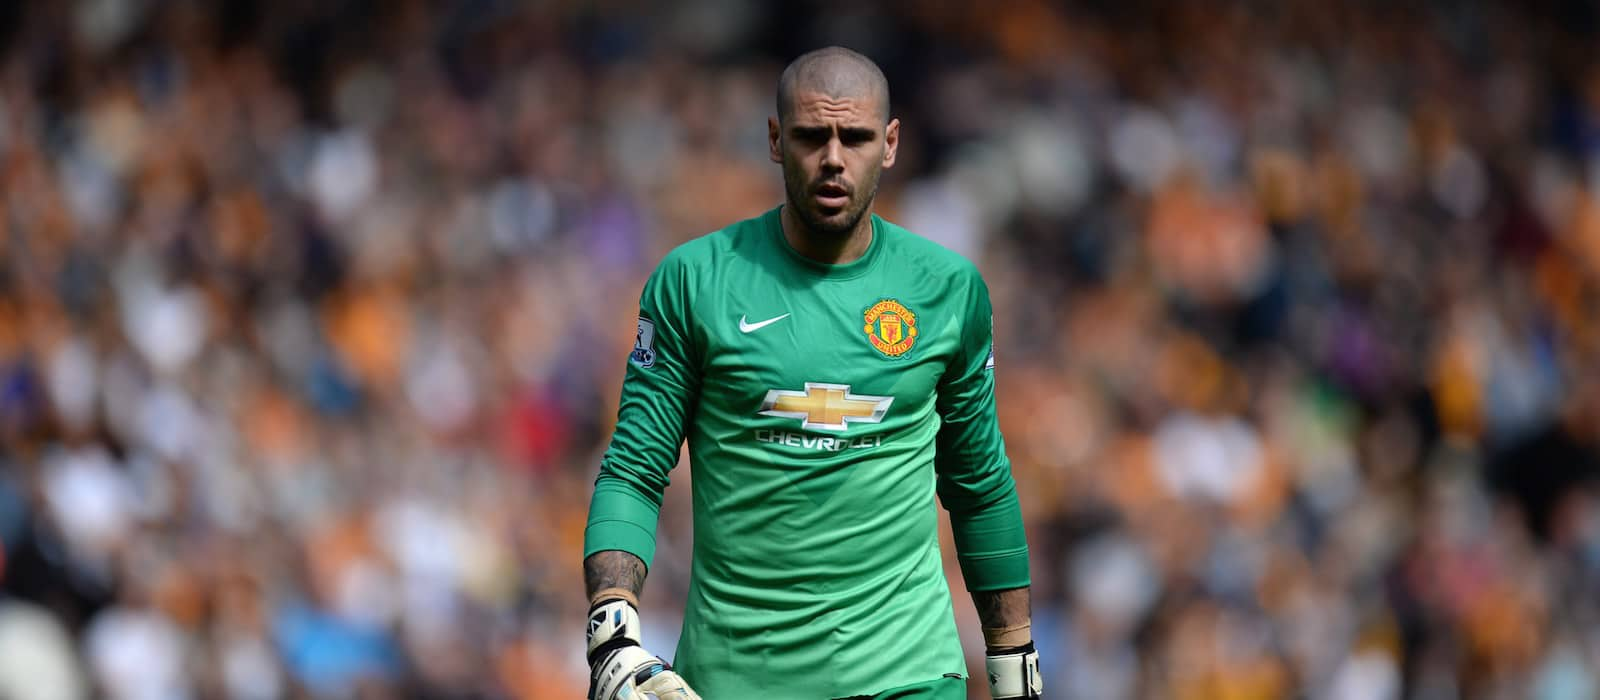 Former Man United Victor Valdes set to join Middlesbrough